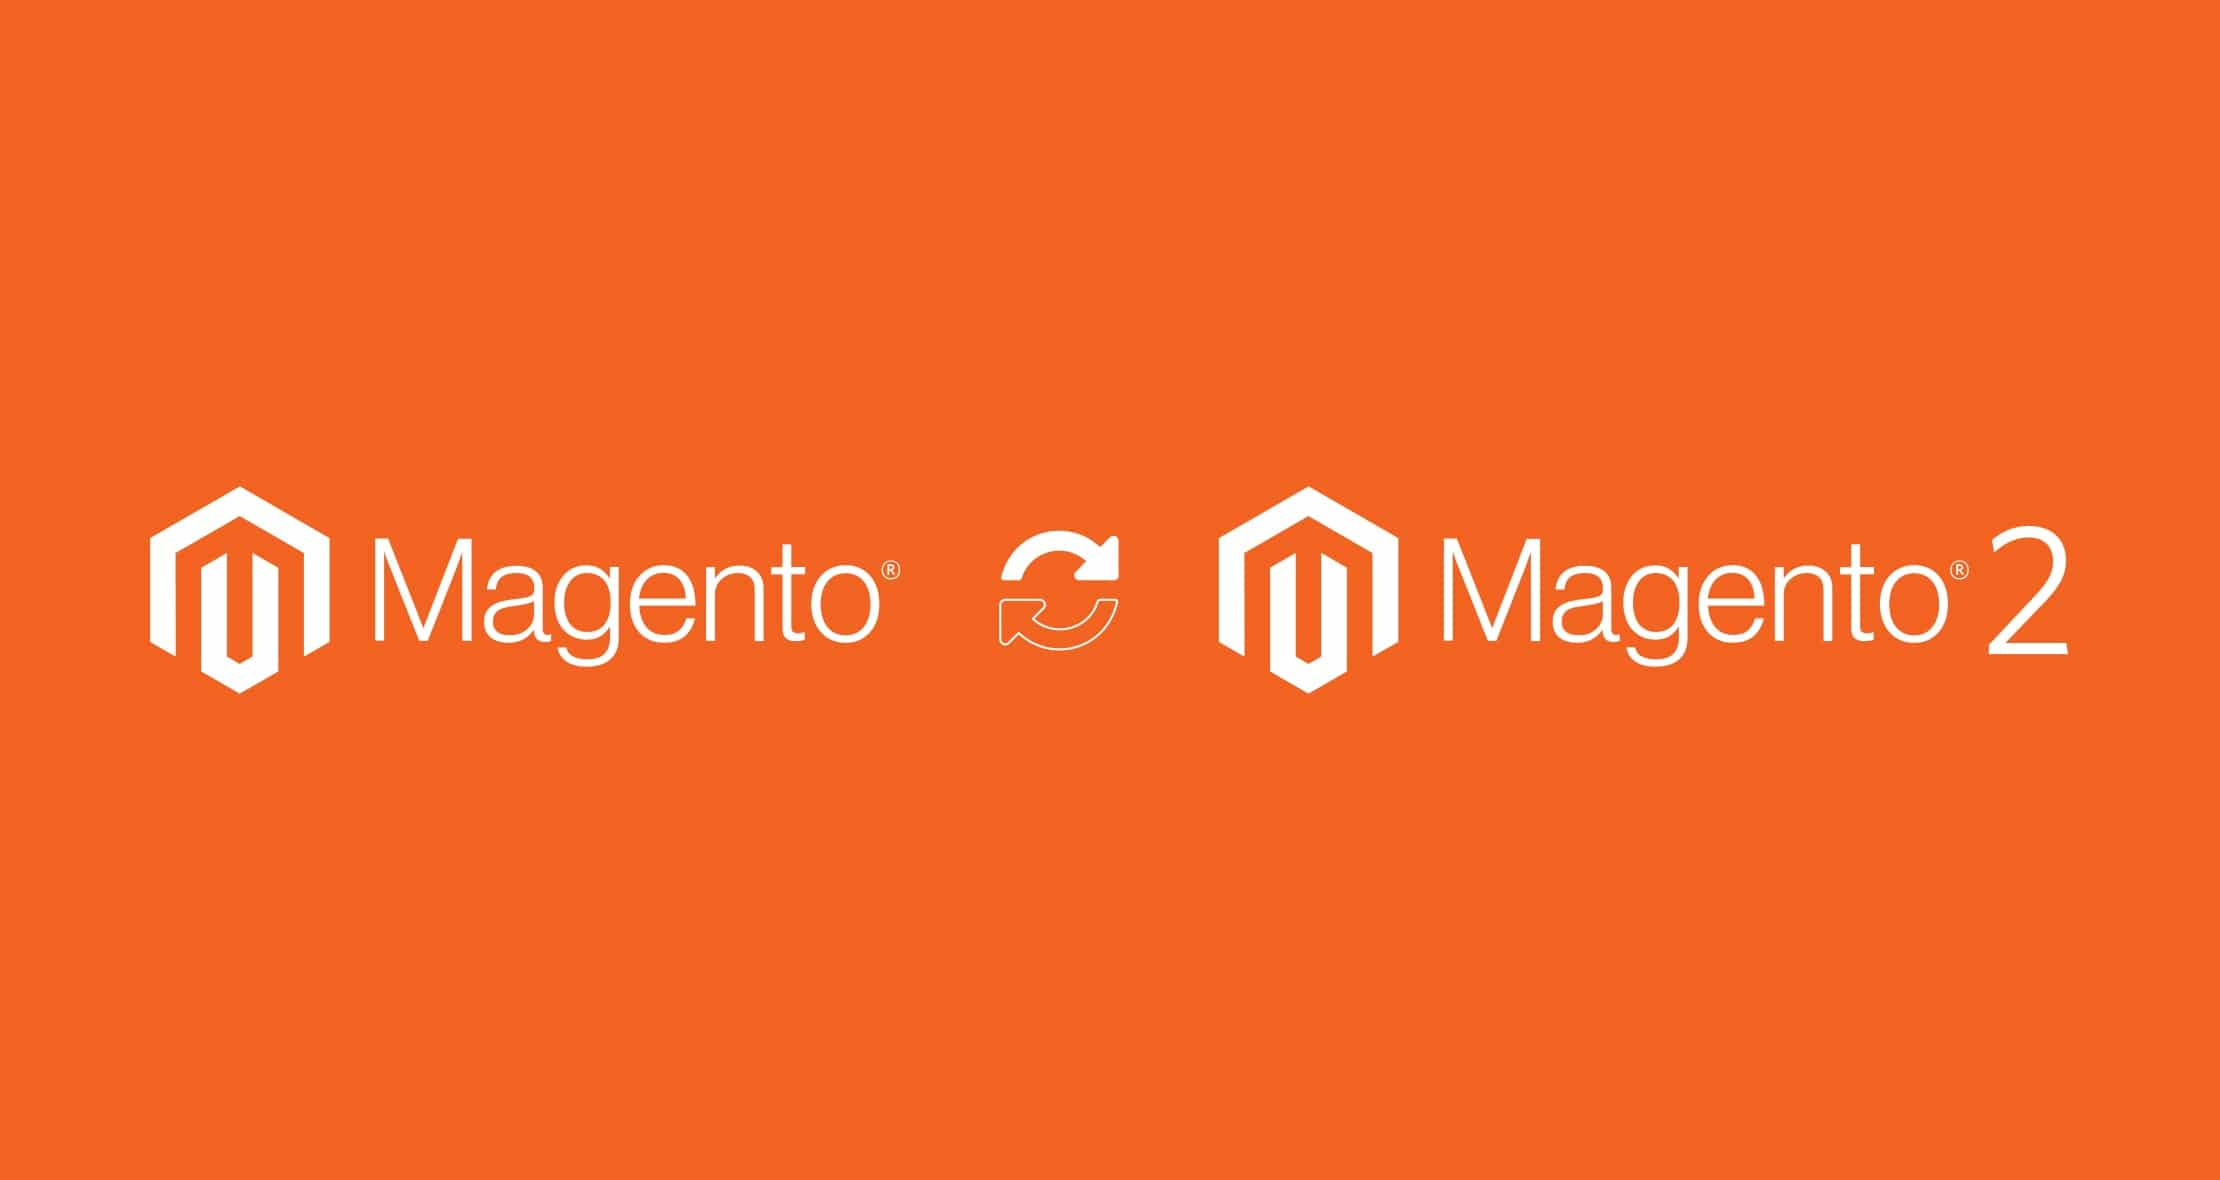 End of life Magento 1.x – hoe nu verder?